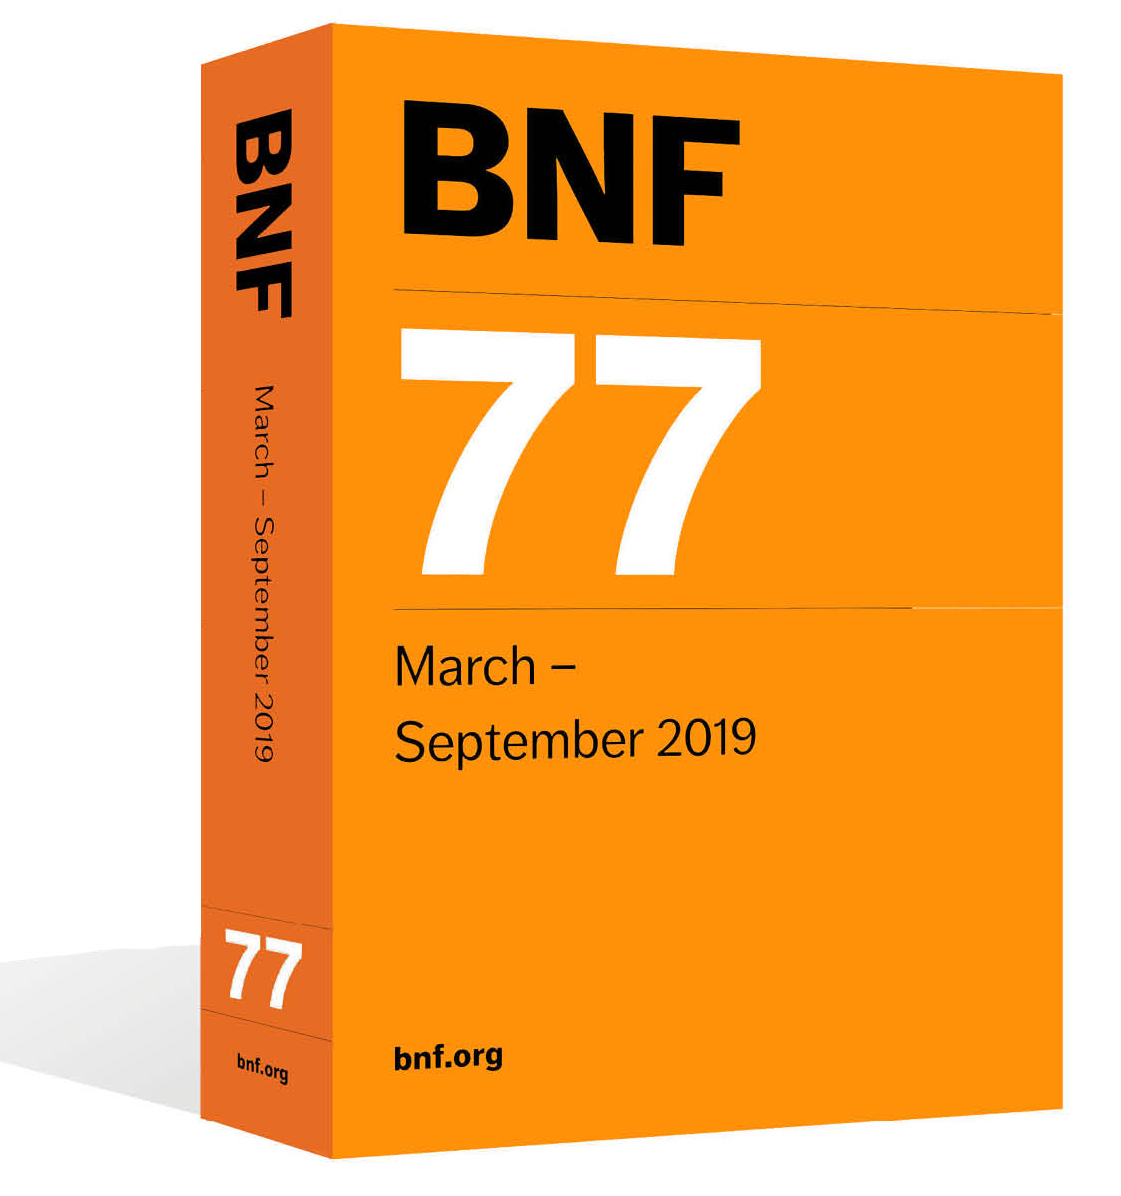 BNF 77 (British National Formulary)